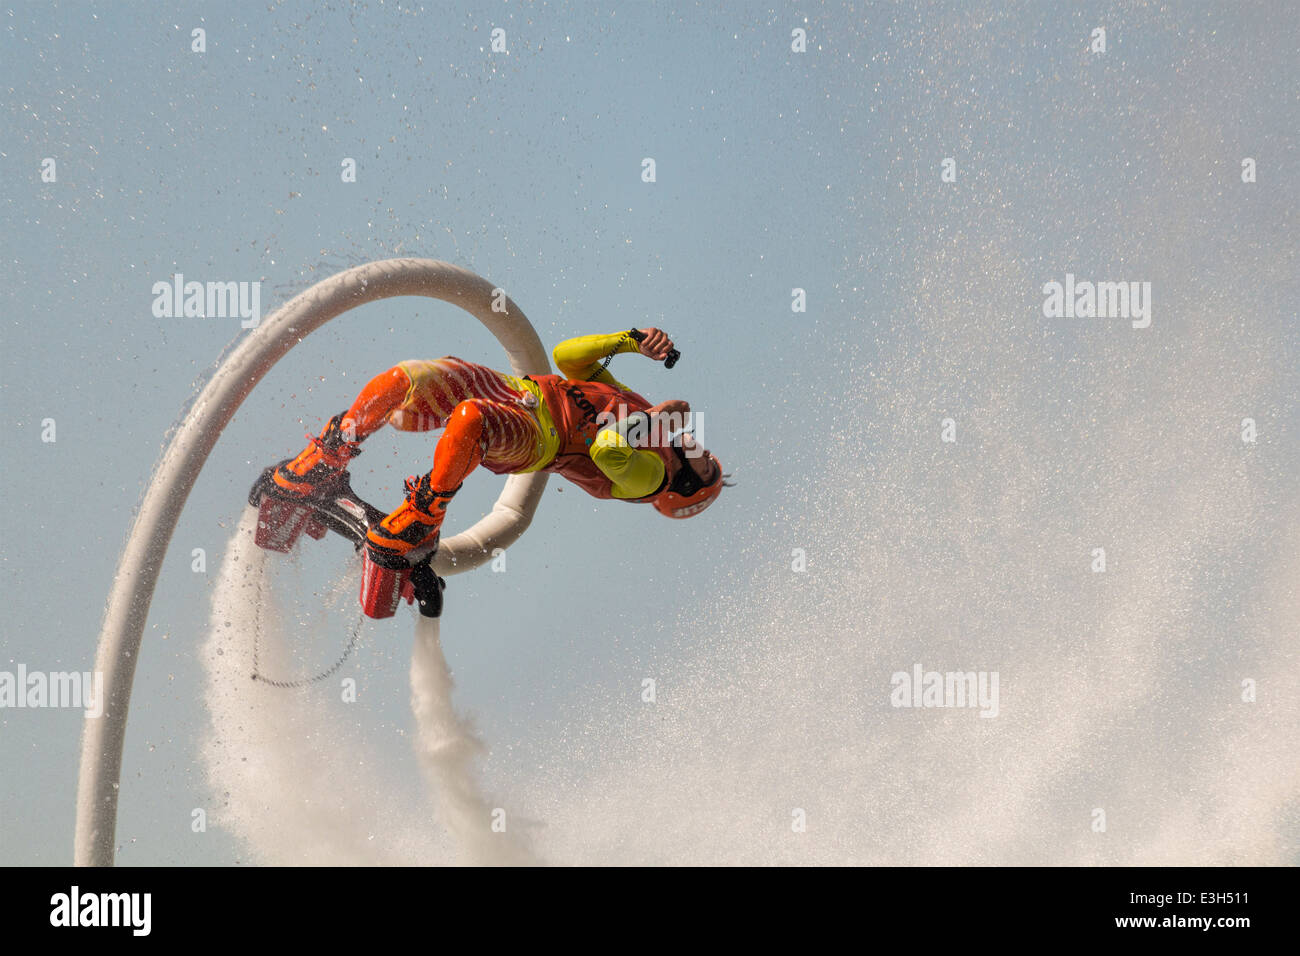 Male flyboarder doing a backflip at the North American Flyboard Championships in Toronto, Ontario, Canada Stock Photo